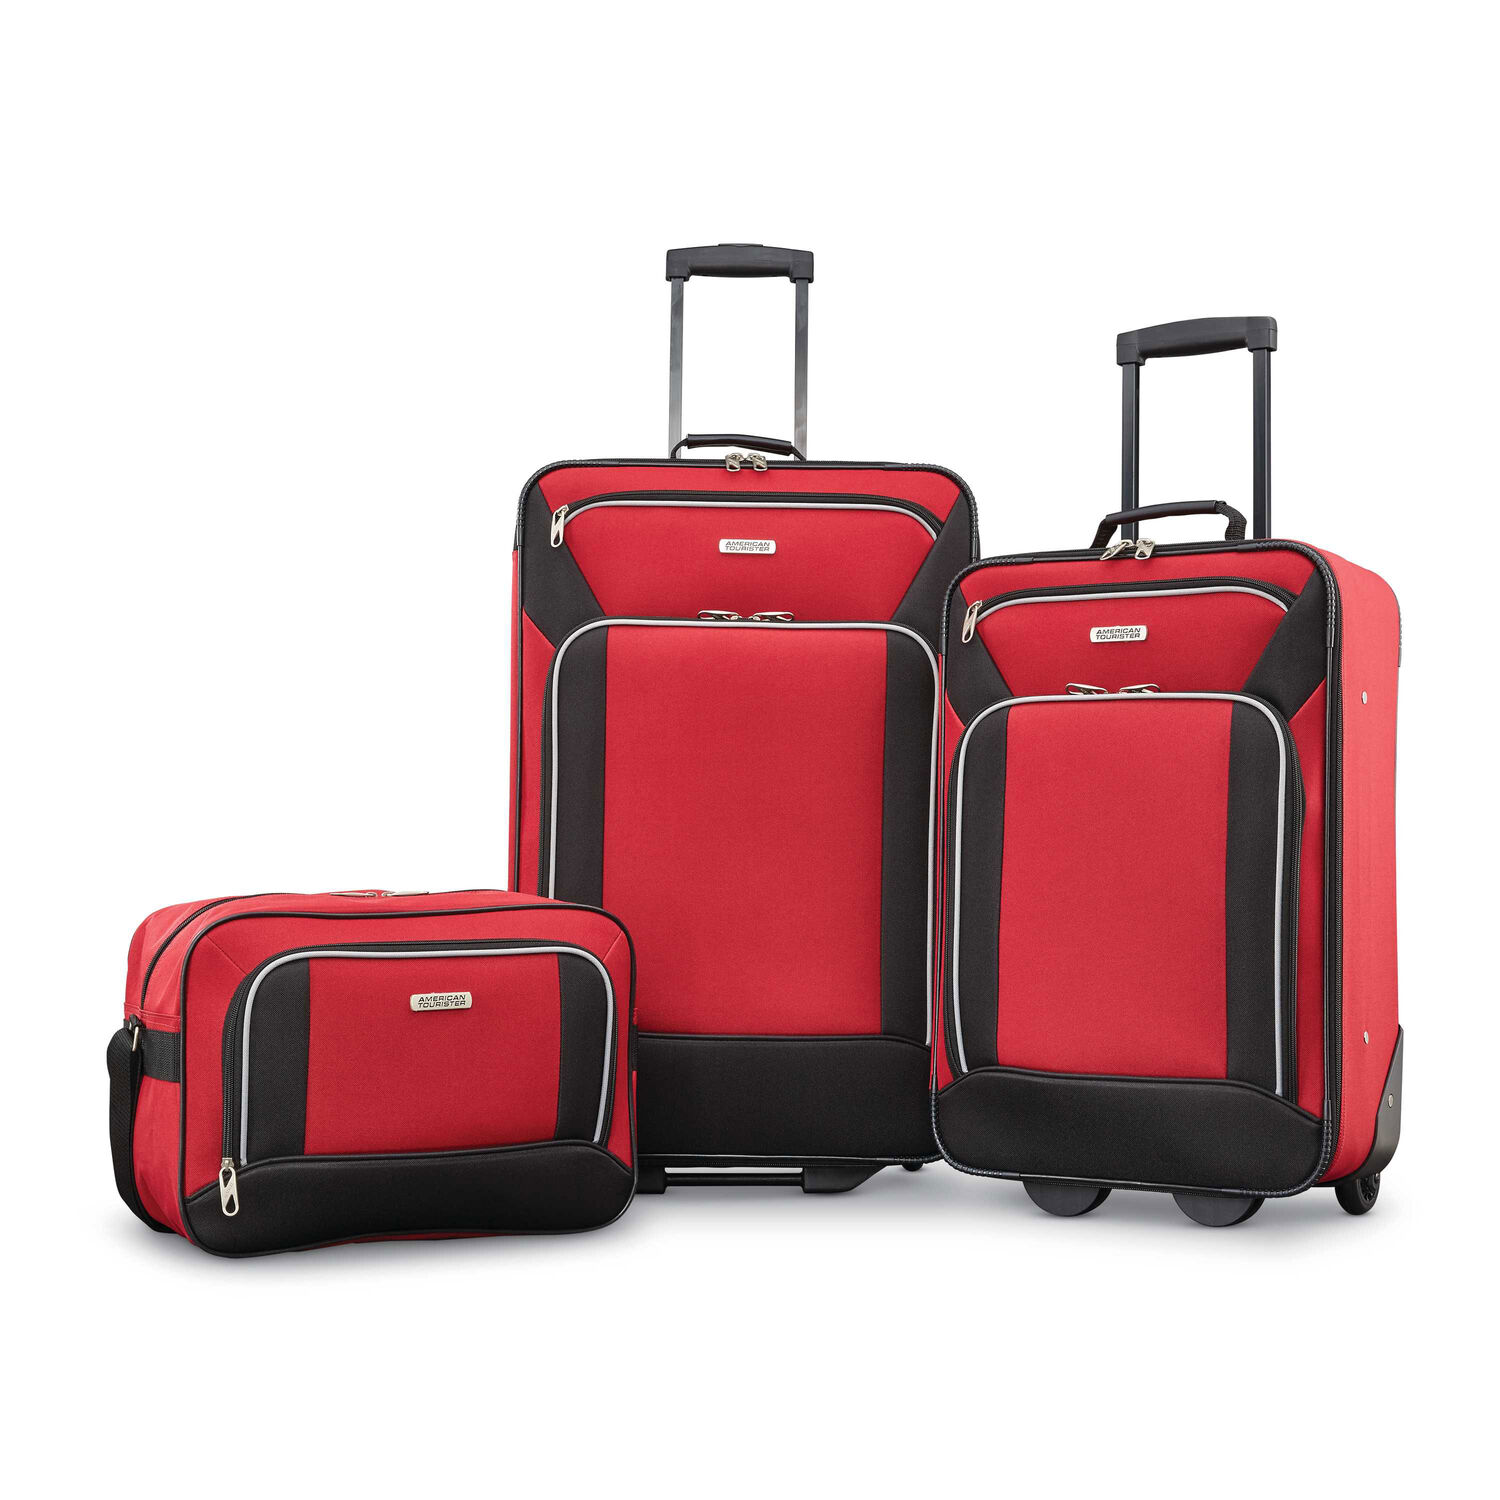 029889a85f2 American Tourister Fieldbrook XLT 3 Piece Set in the color Red Black.